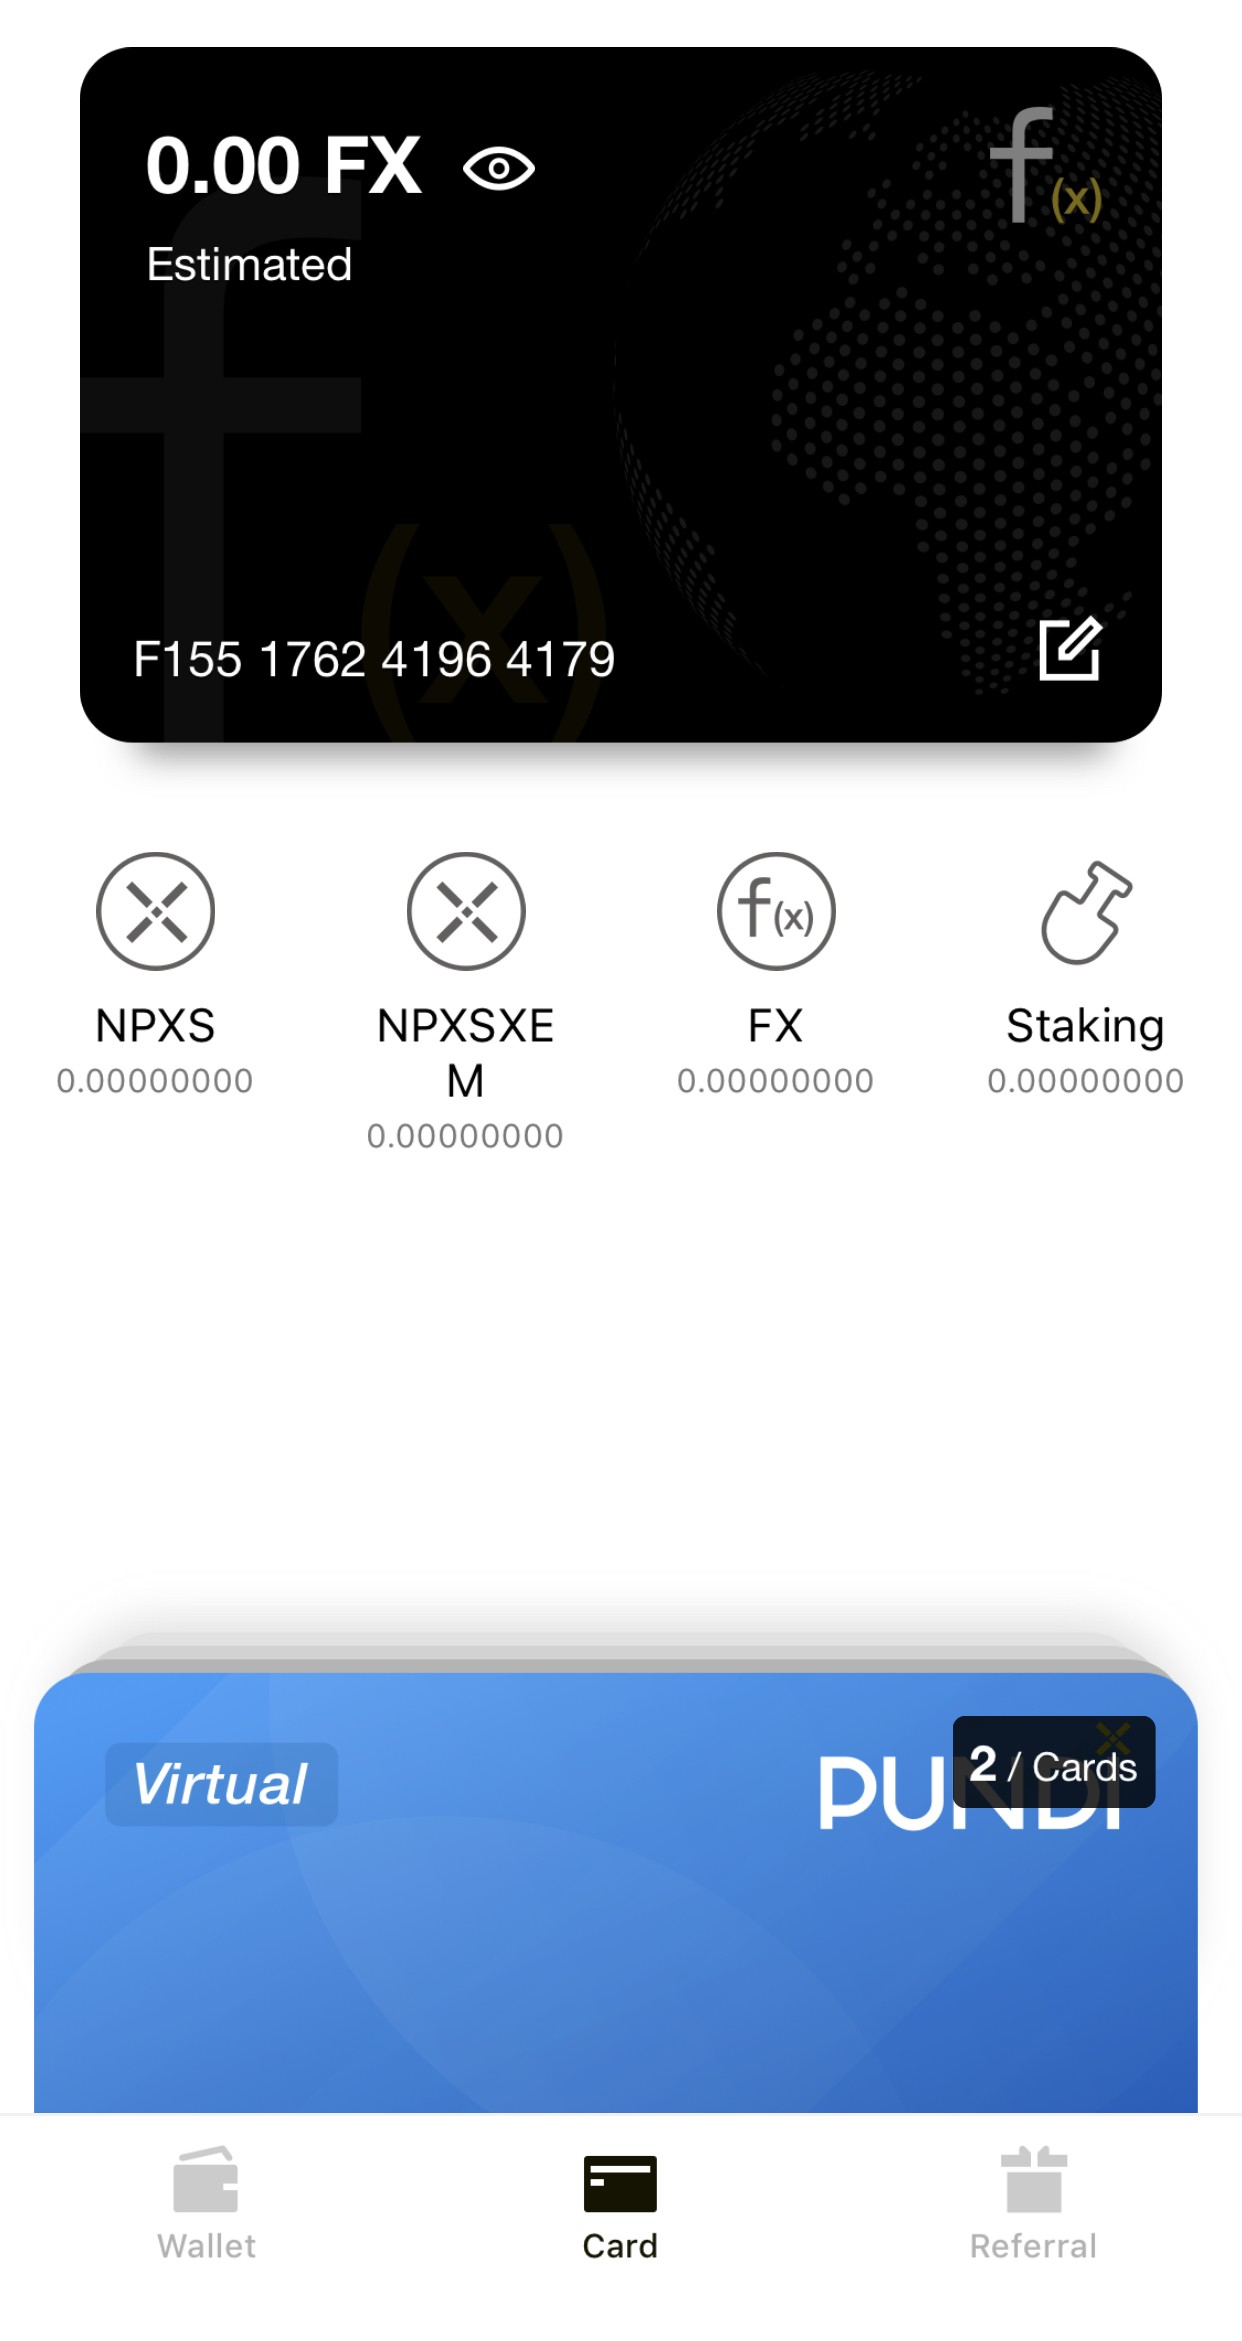 A guide to staking NPXS / NPXSXEM for f(x) tokens - Pundi X